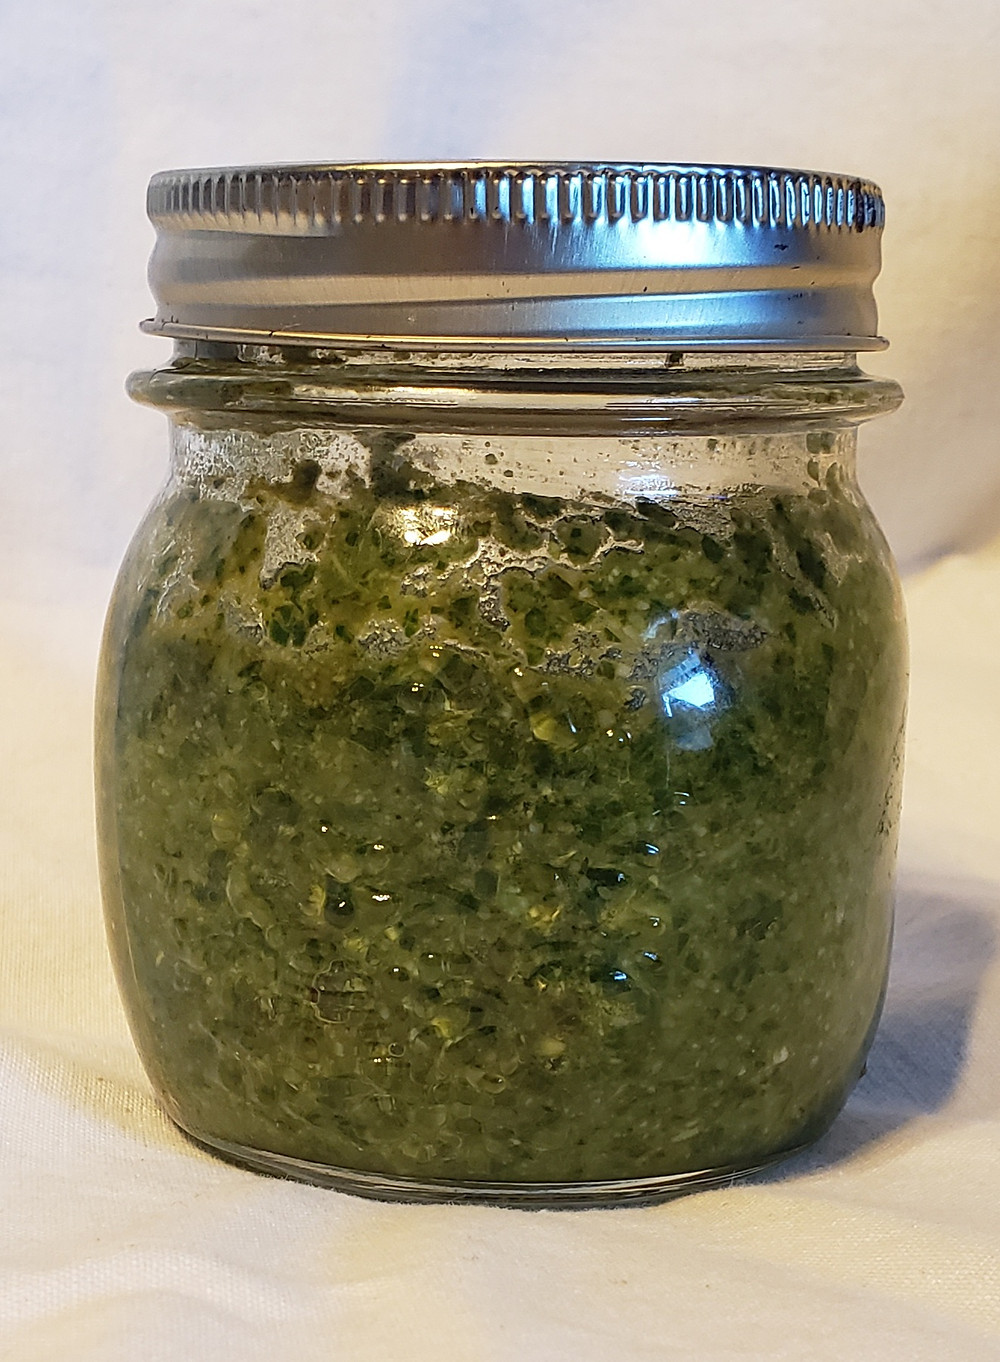 A completed half pint jar of pesto with a silver lid on a white background. End photo ID.